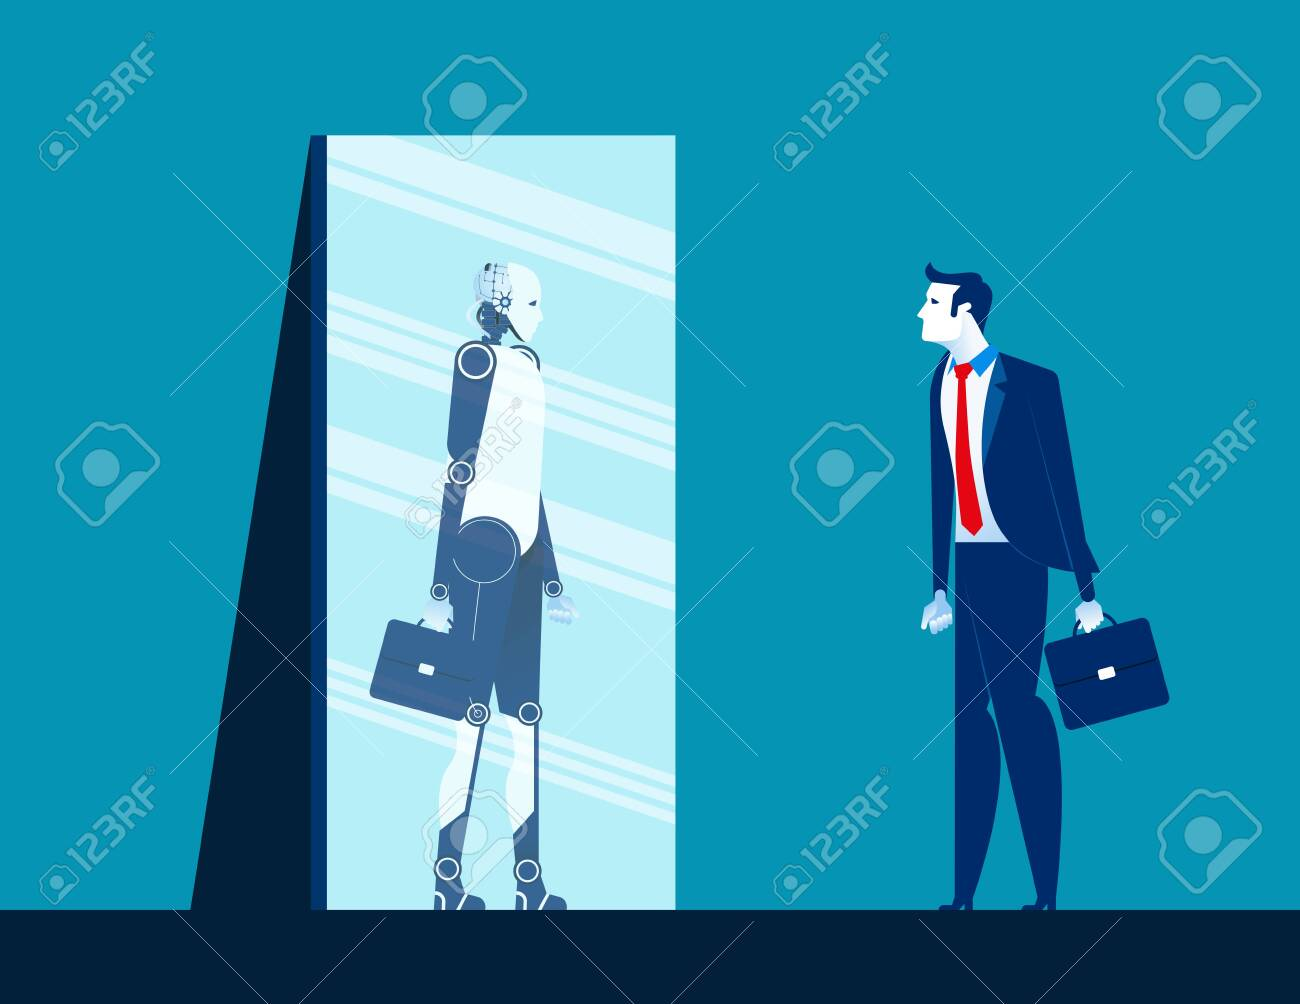 Businessman standing and looking body in mirror of robot reflection. Concept business vector illustration. Flat design style - 124396296